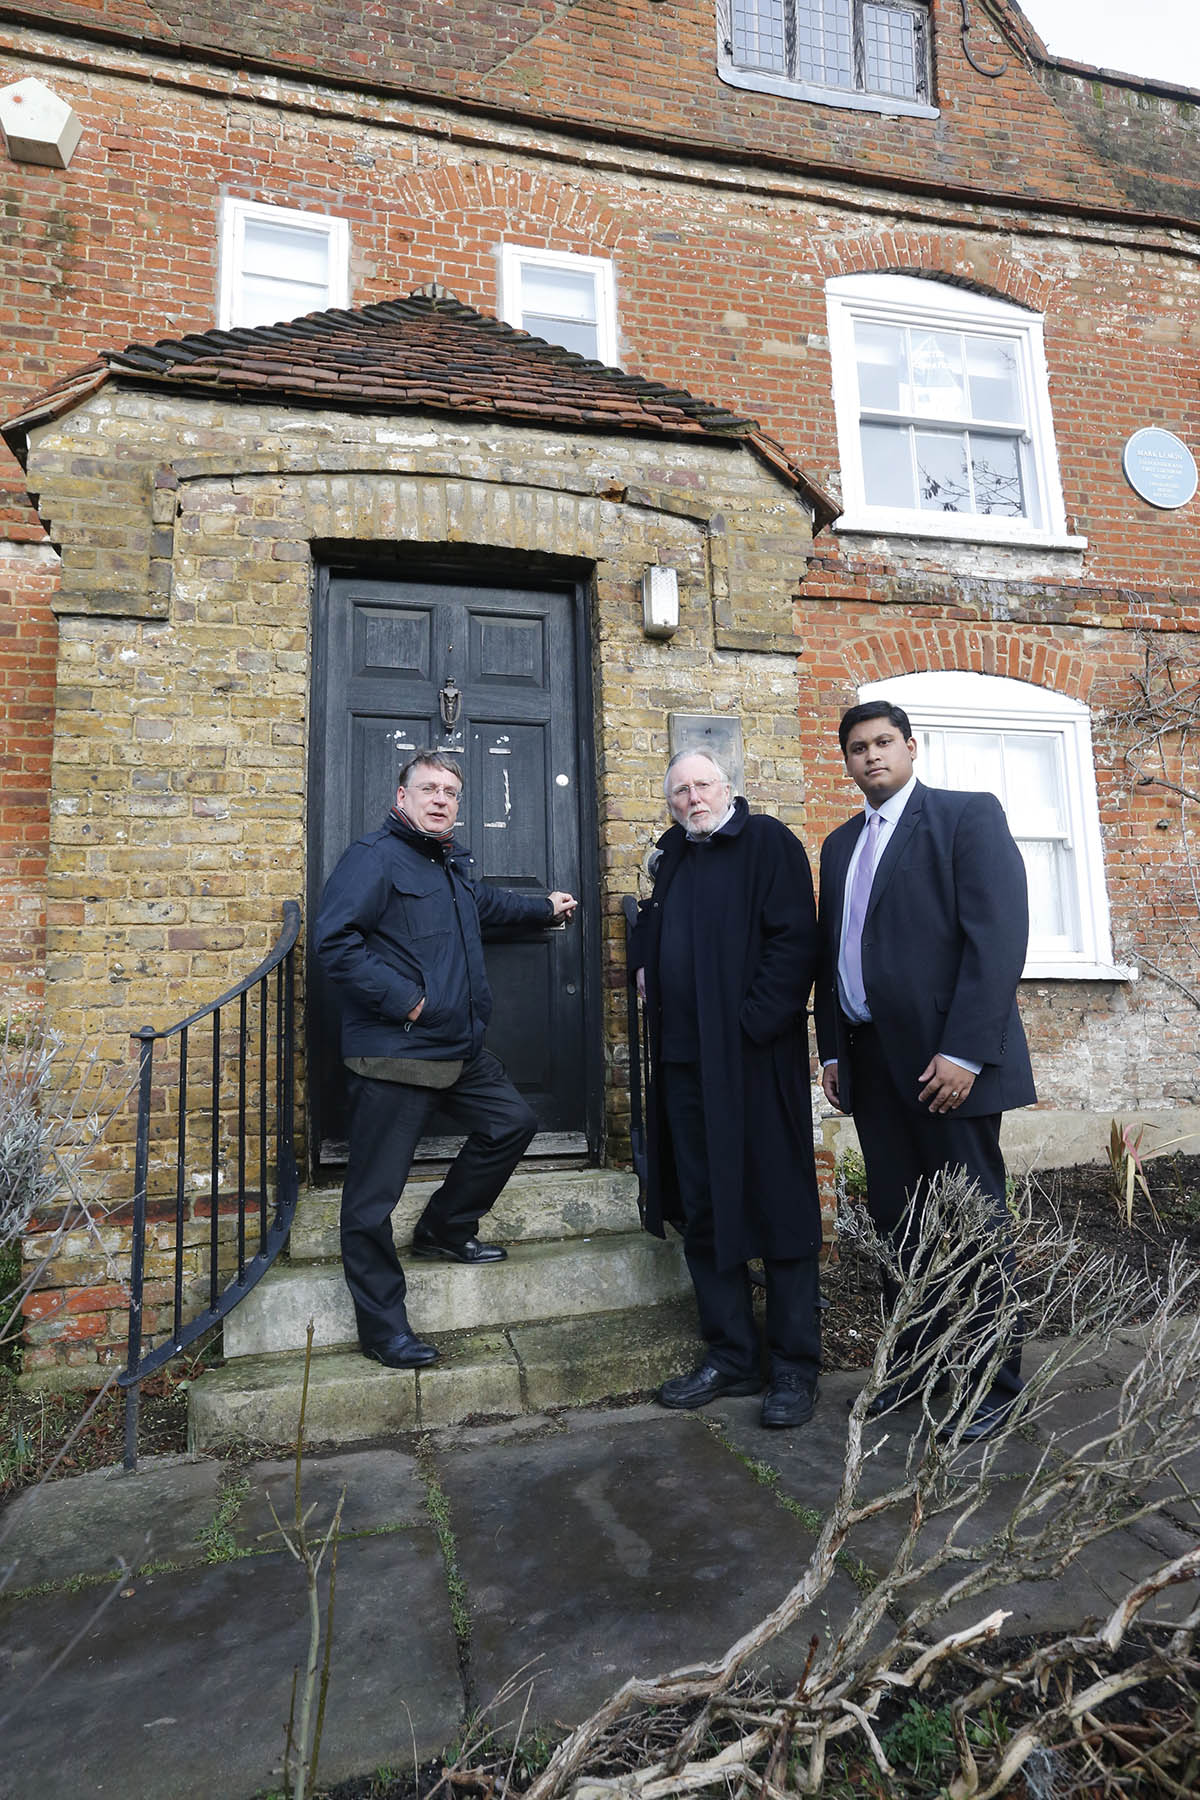 'They are adding insult to injury' - anger as historic building labelled vulnerable